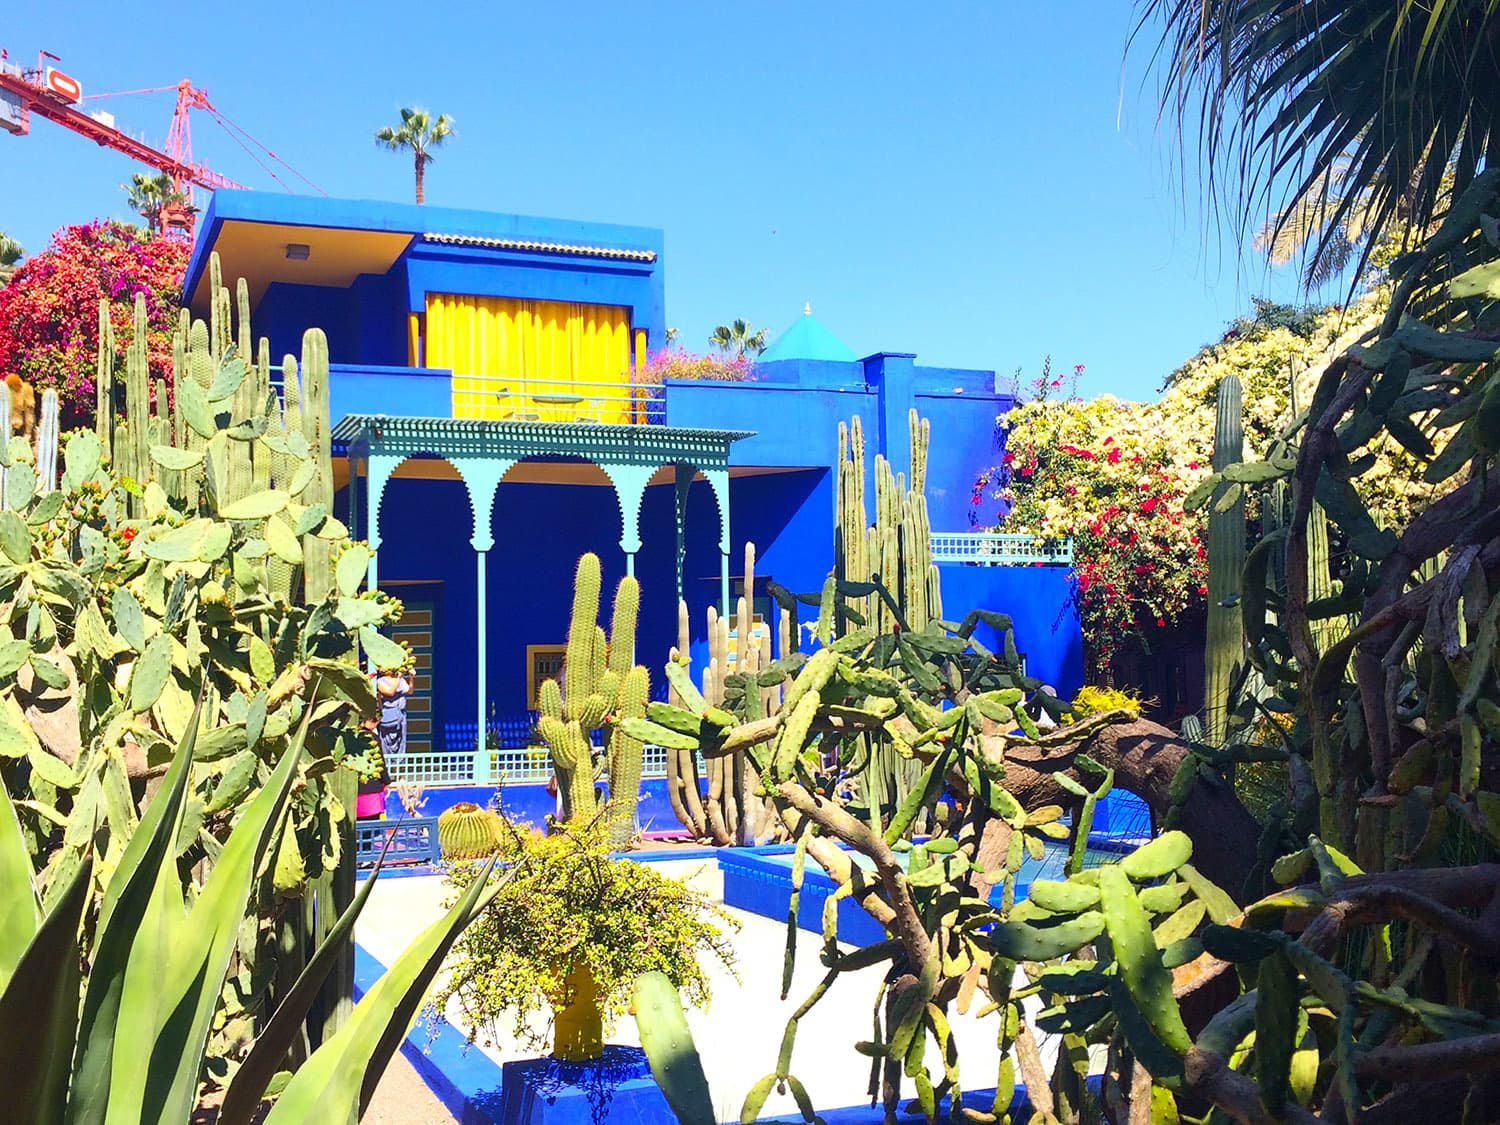 The striking blue shades were an interesting contrast in the Jardin Marjorelle.